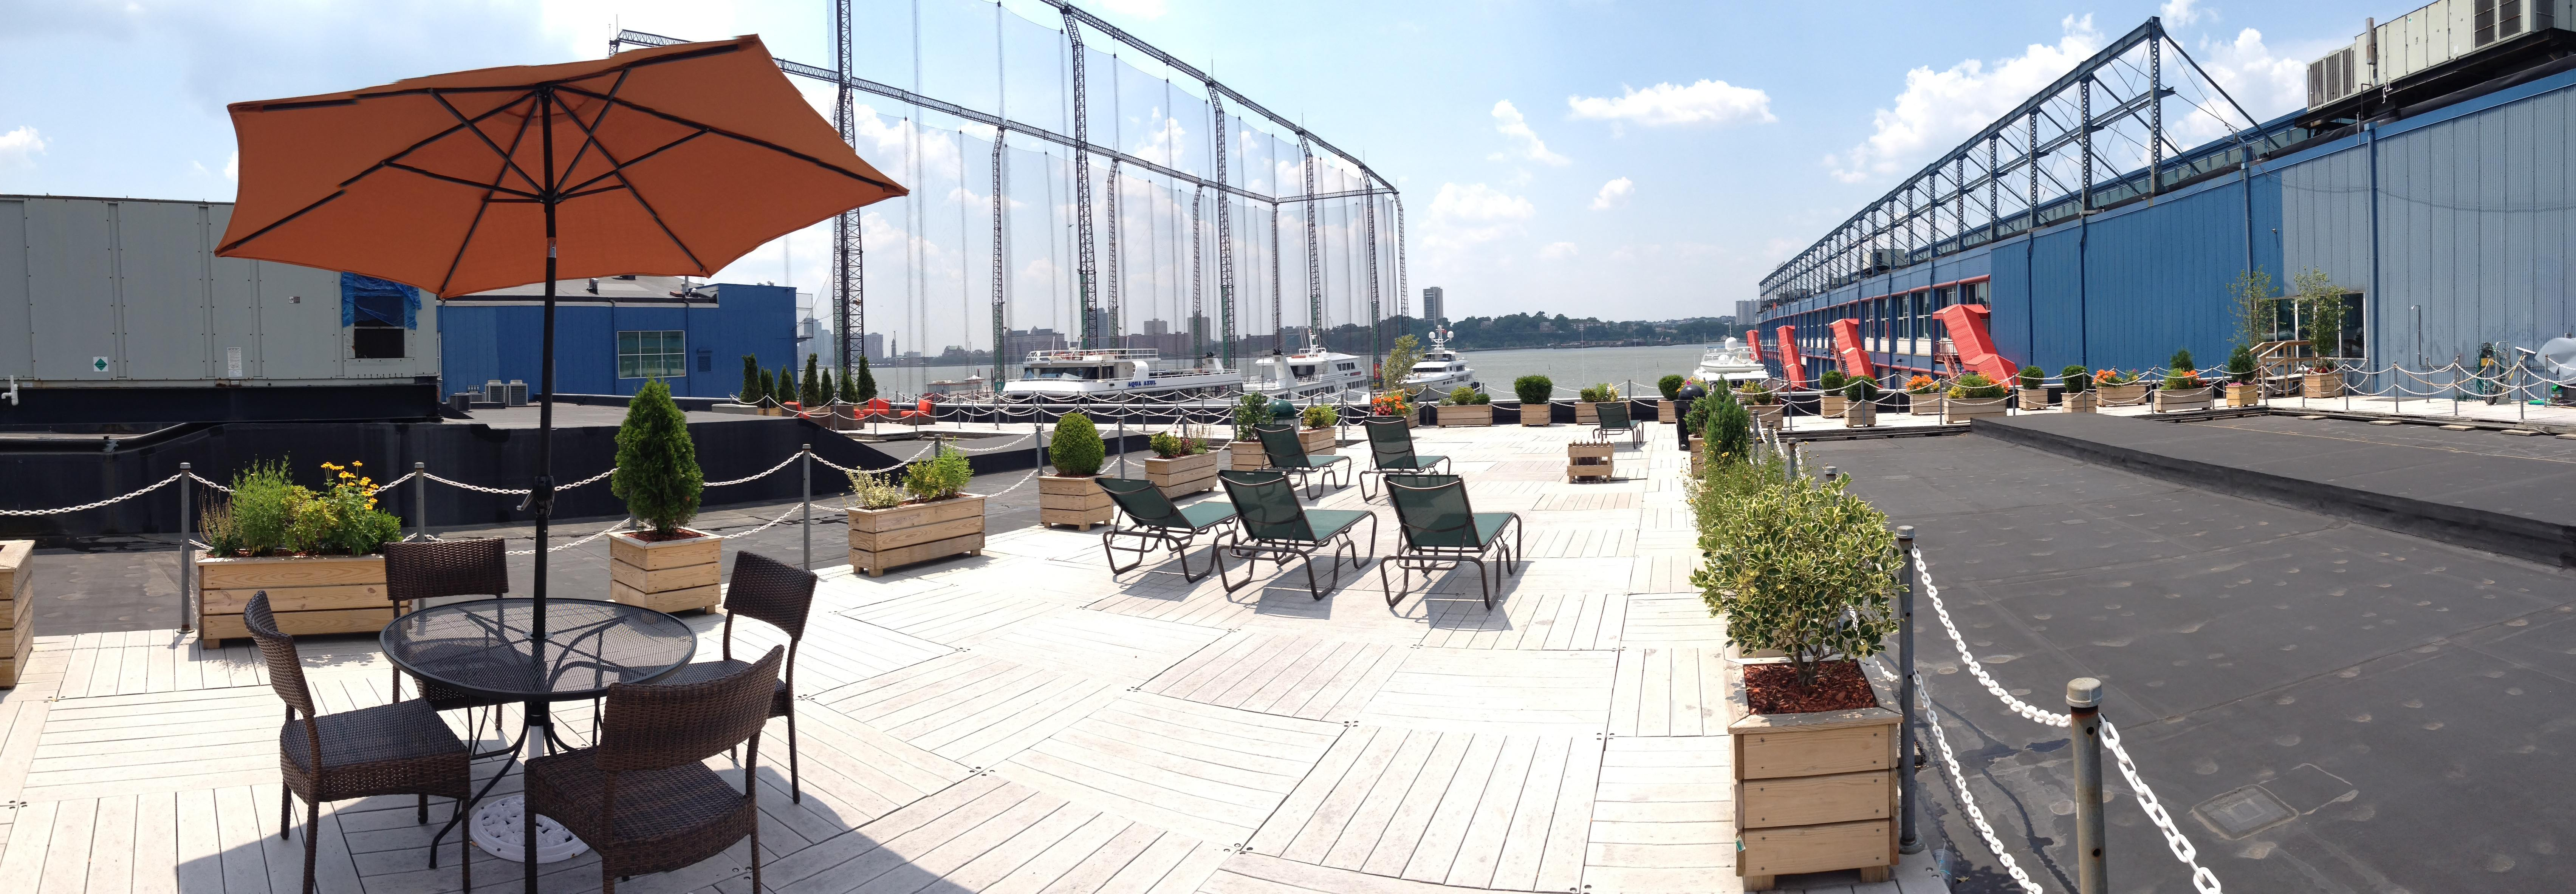 Chelsea Piers Fitness in New York, NY, photo #10